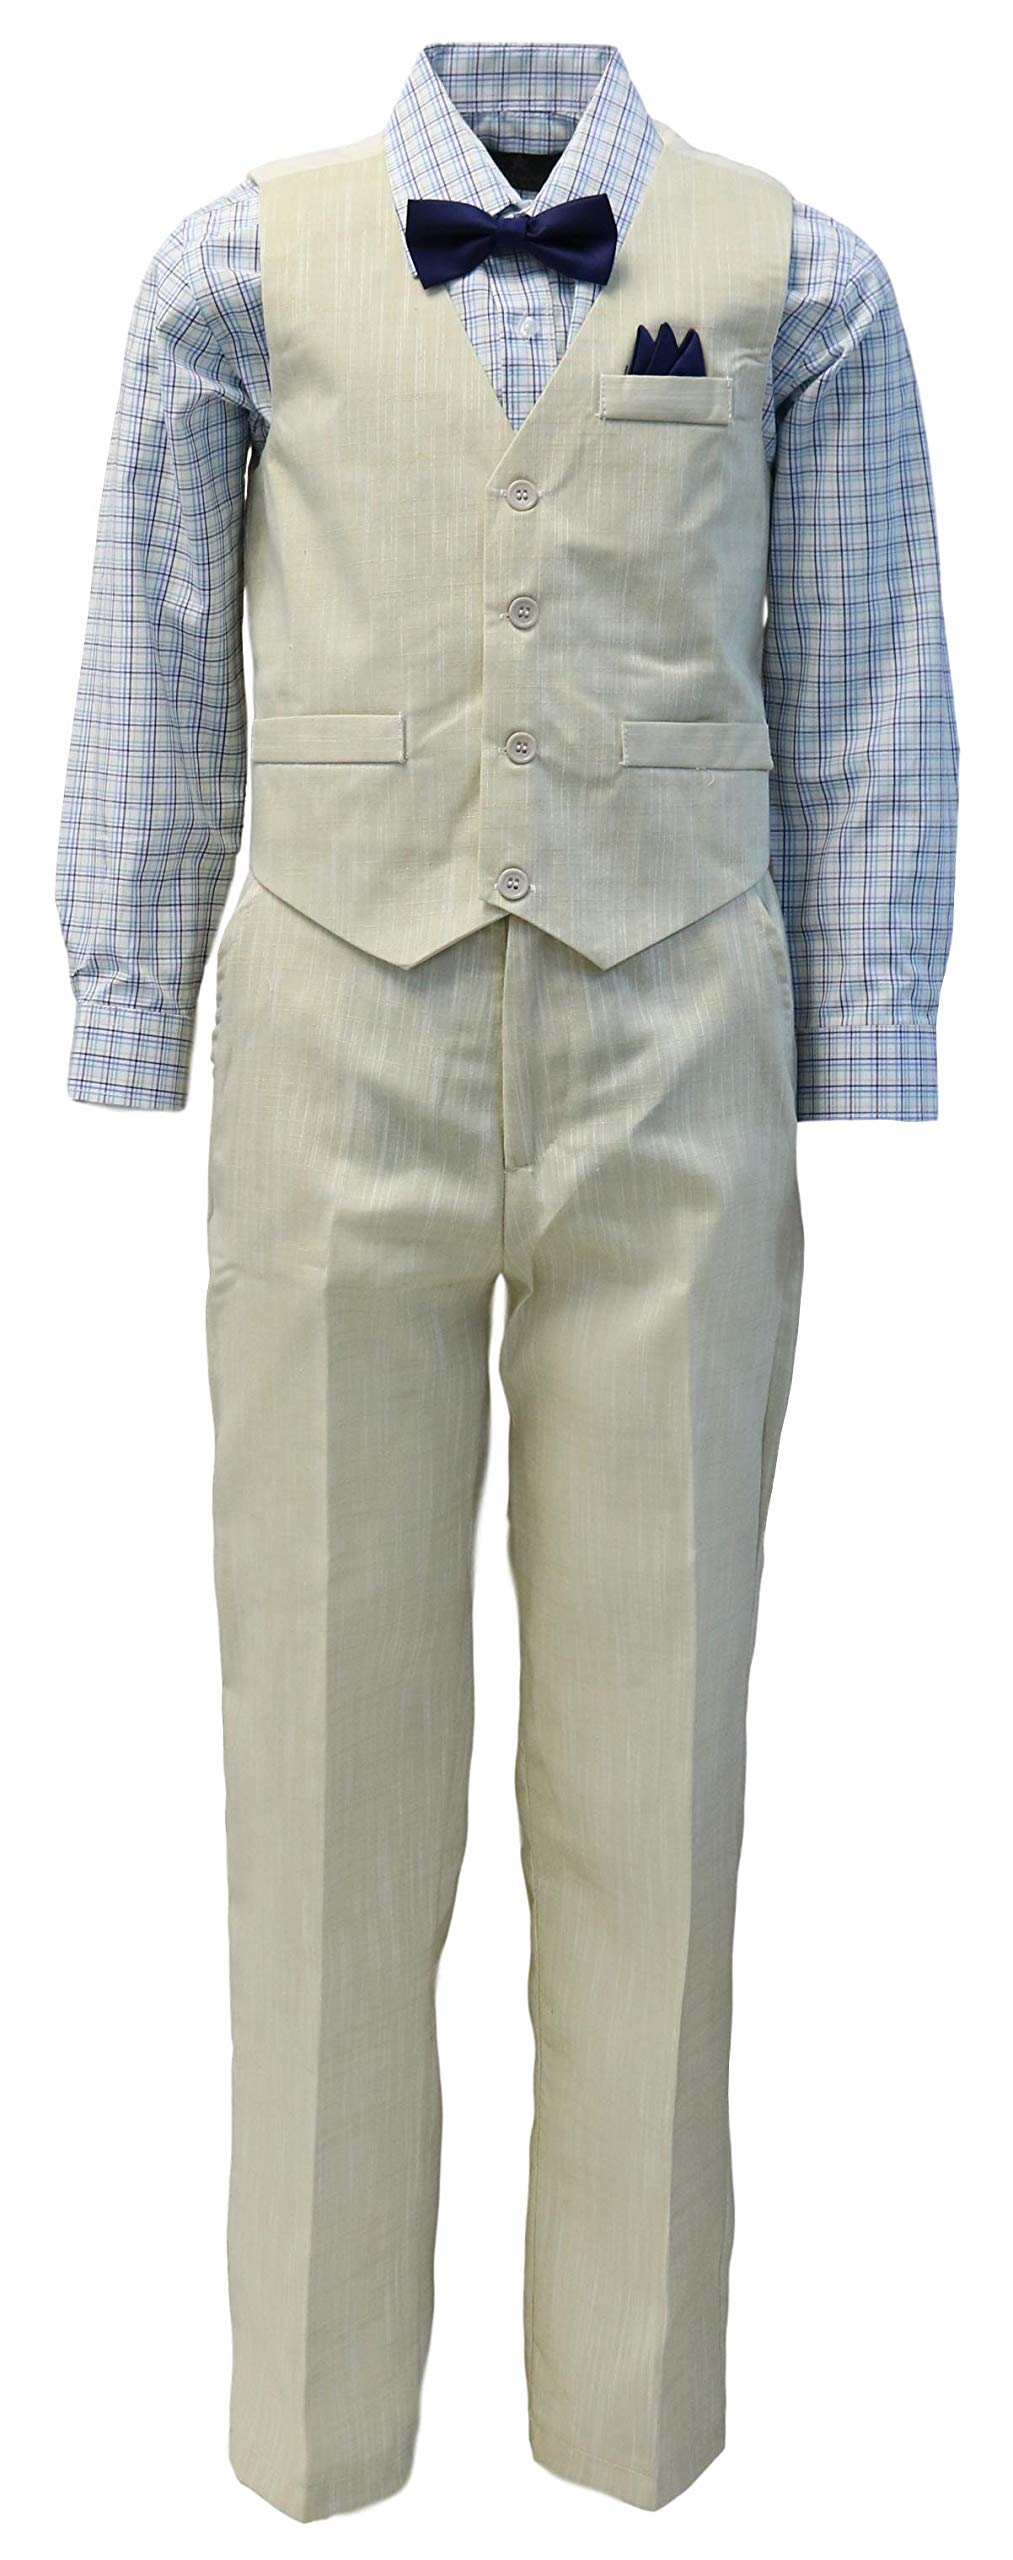 Vittorino Boy's Linen Look 4 Piece Suit Set with Vest Pants Shirt and Tie, Sand - Yellow, 2T